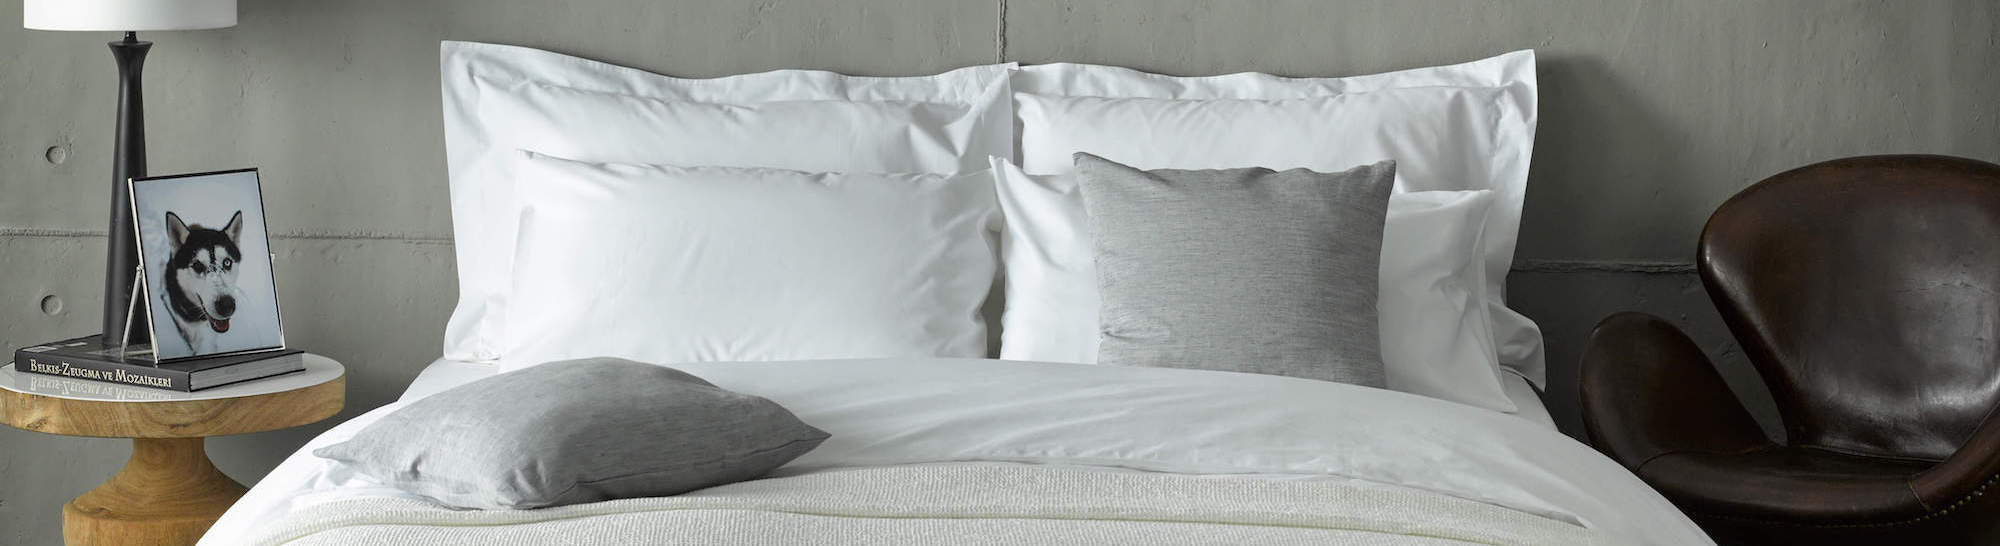 cotton white bedding bundle on bed in a loft apartment